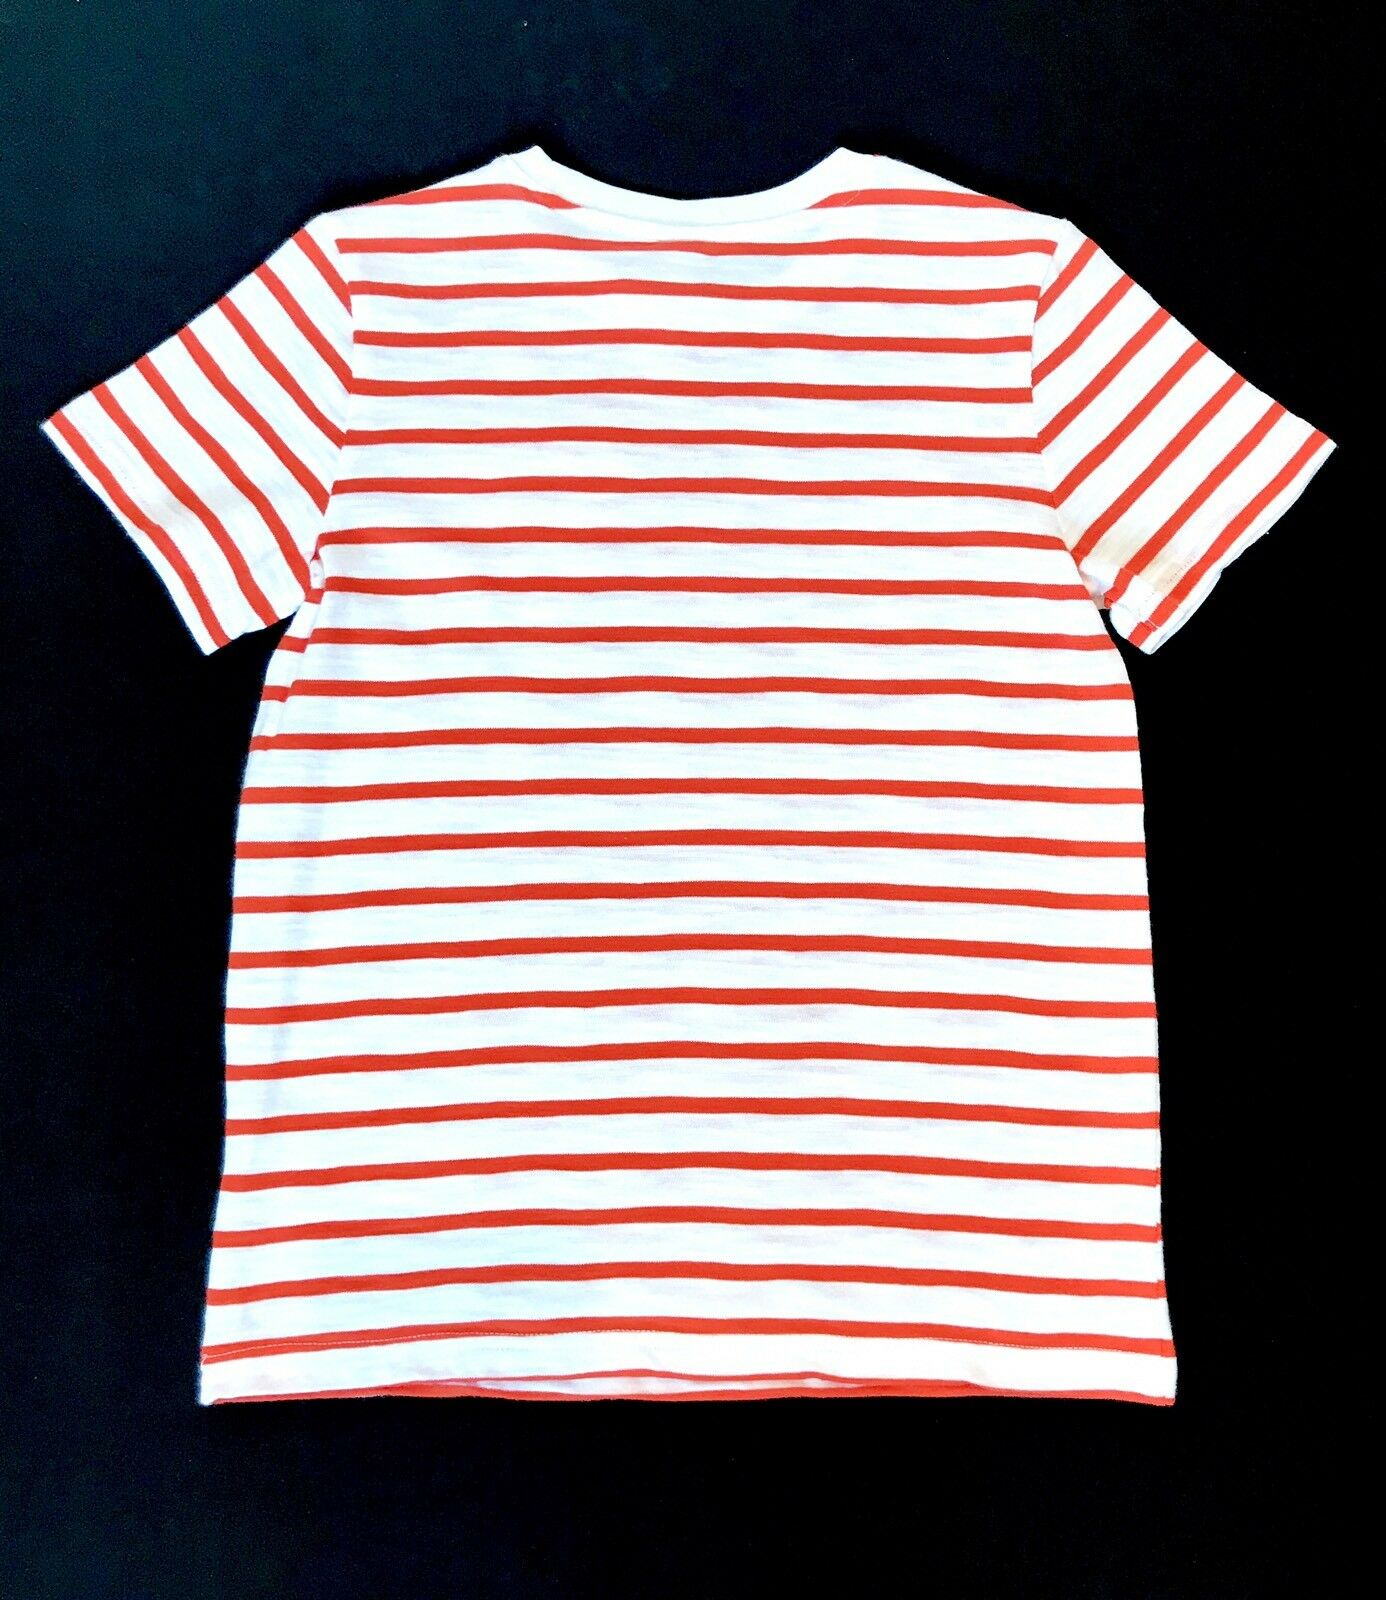 Janie And Jack Orange And White Striped Tee Age 7 NWT Retail $19 Price $13.50